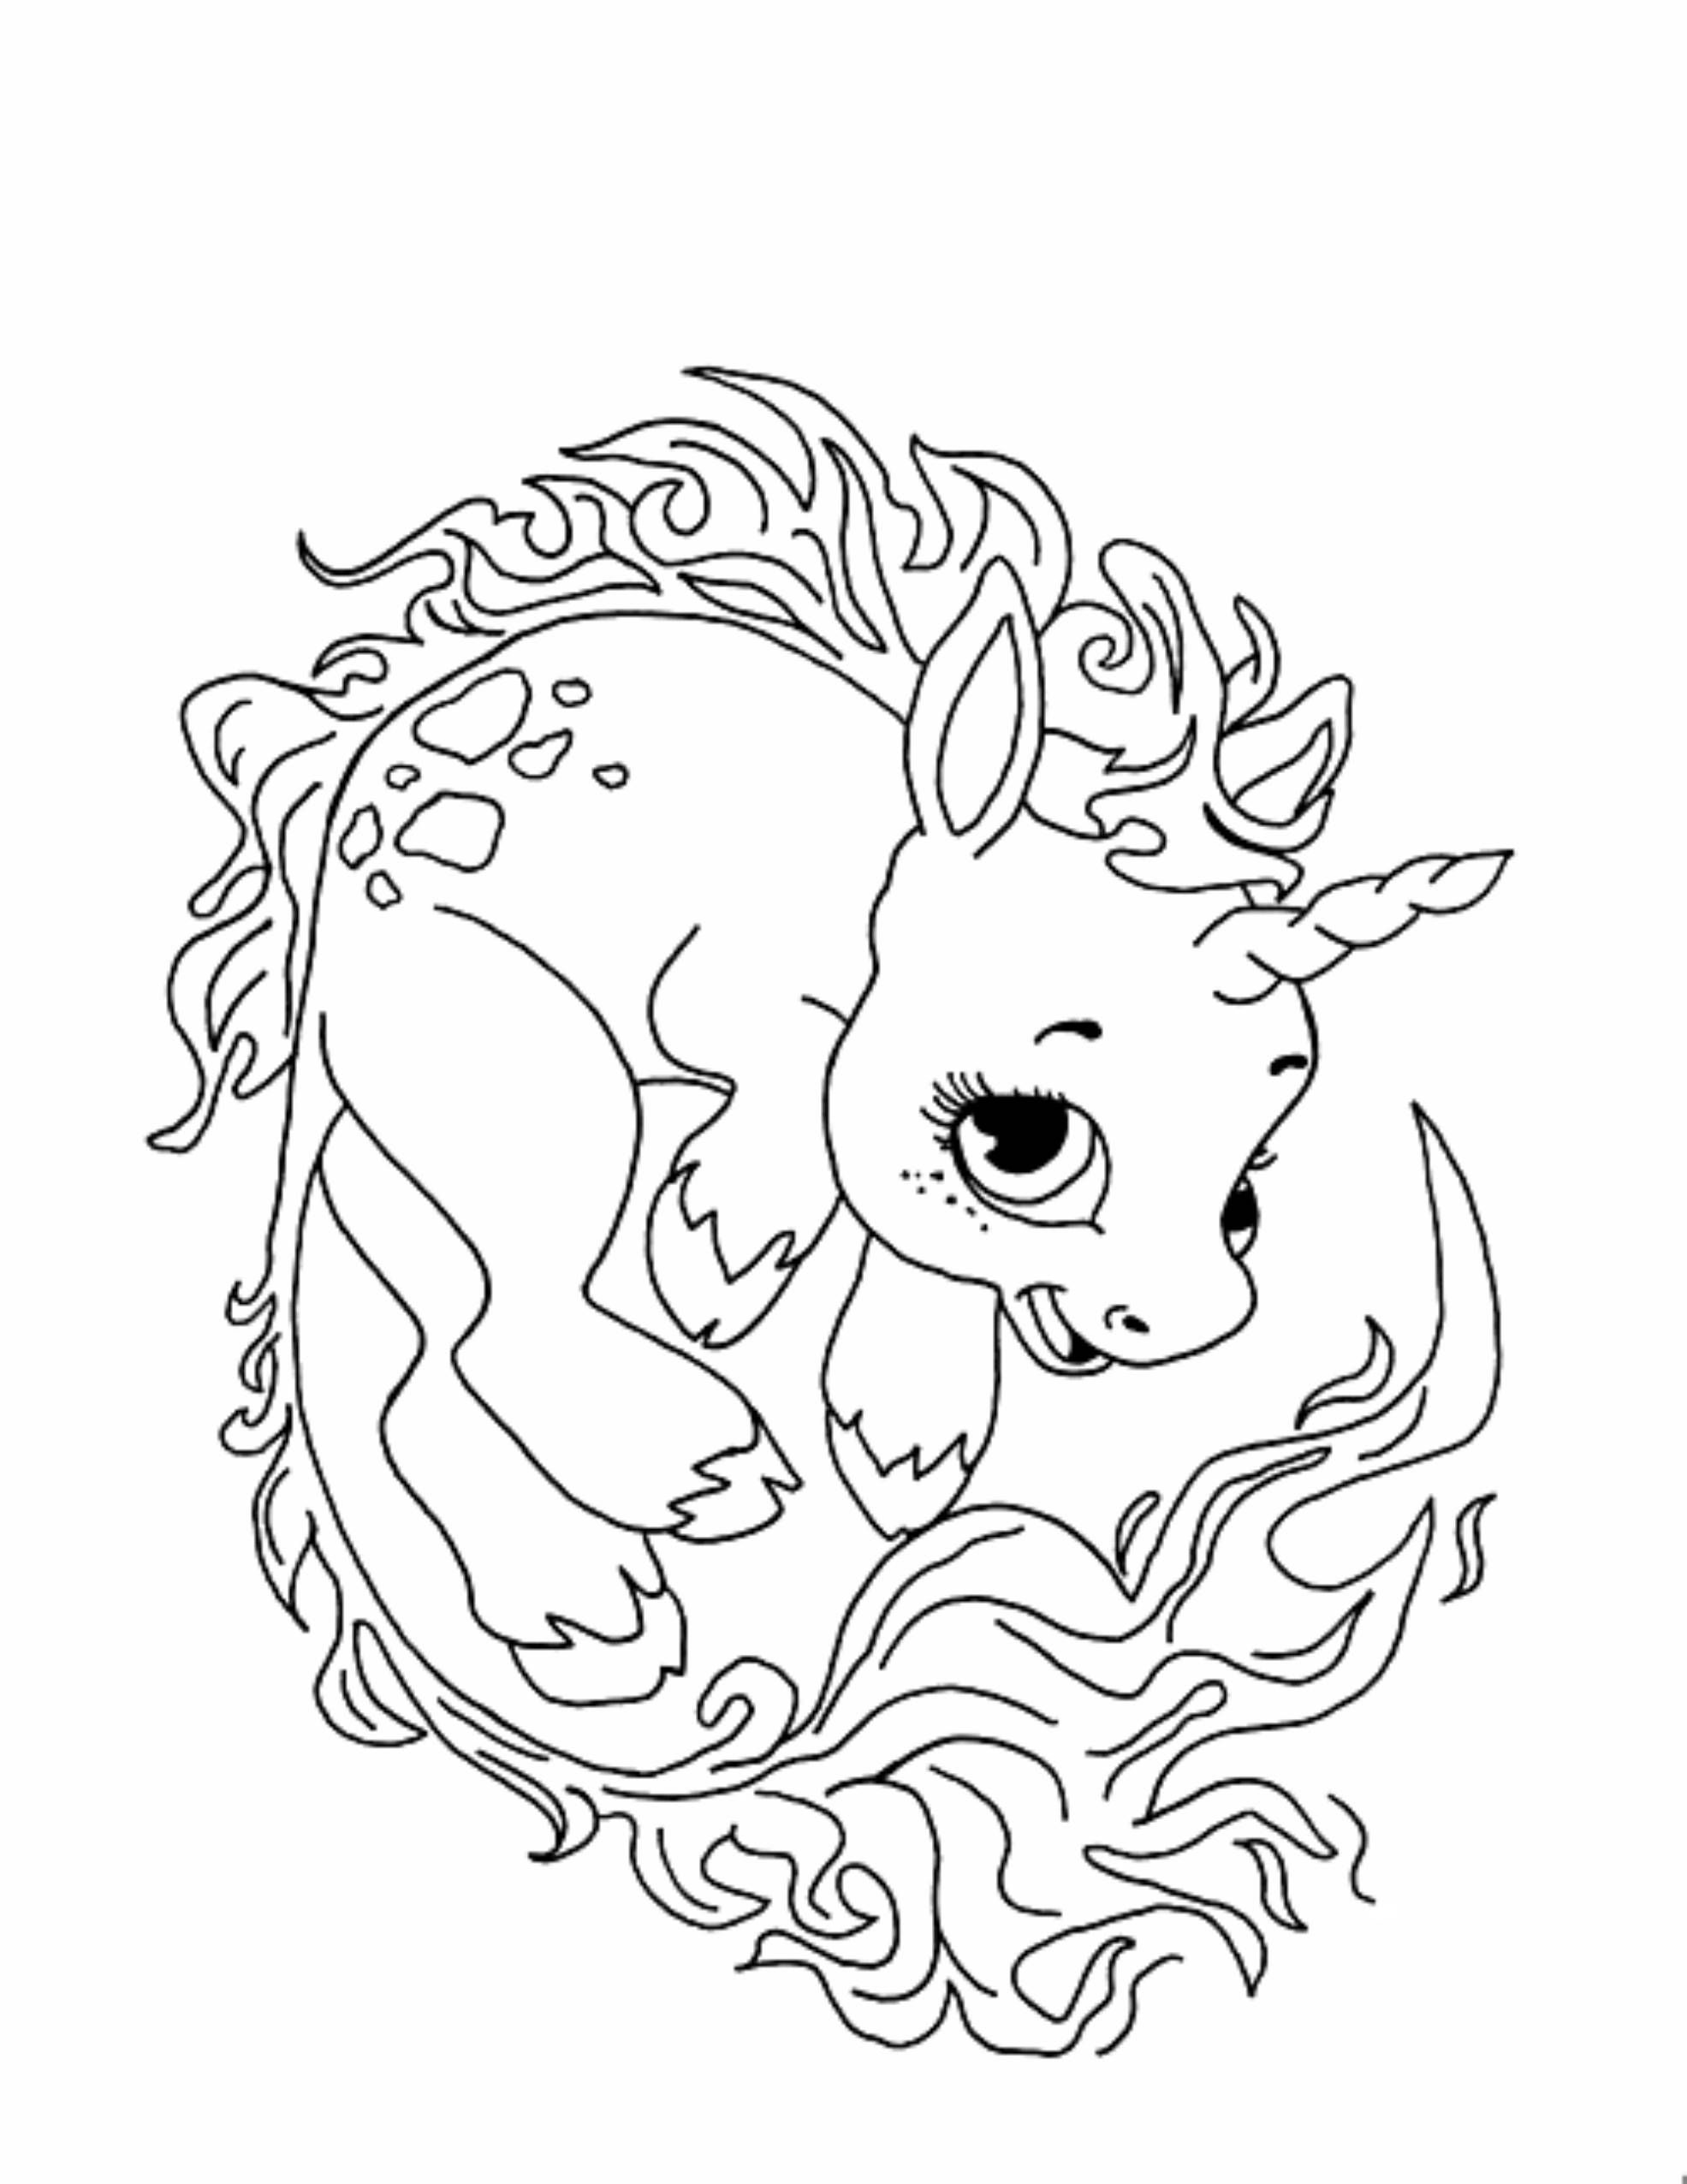 cute unicorn coloring pages Pokemon coloring pages, Easy